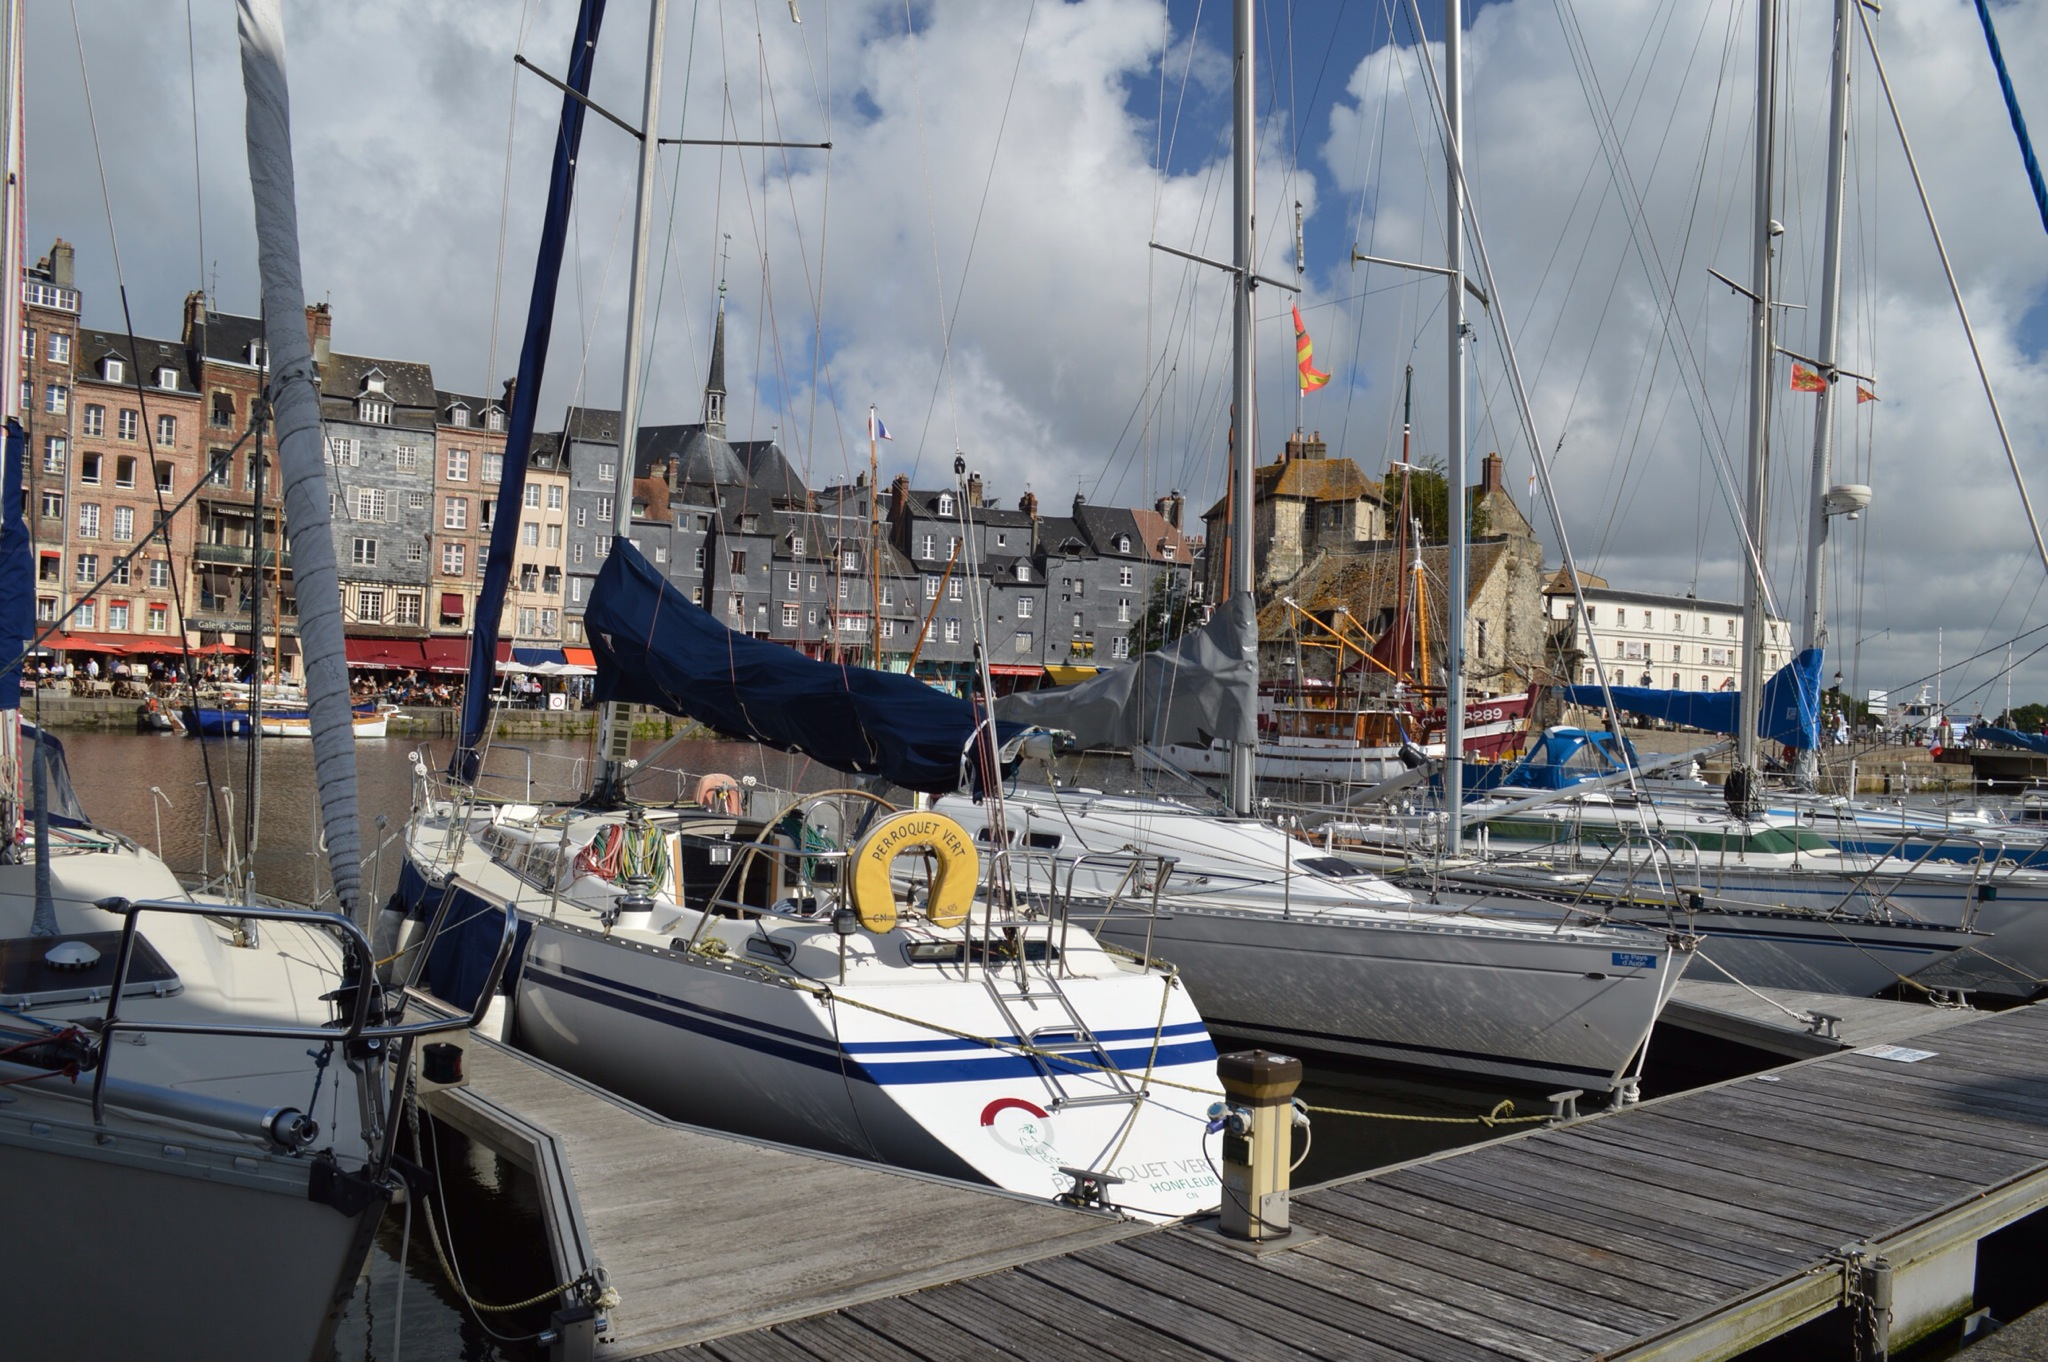 Honfleur, the mouth of the Seine